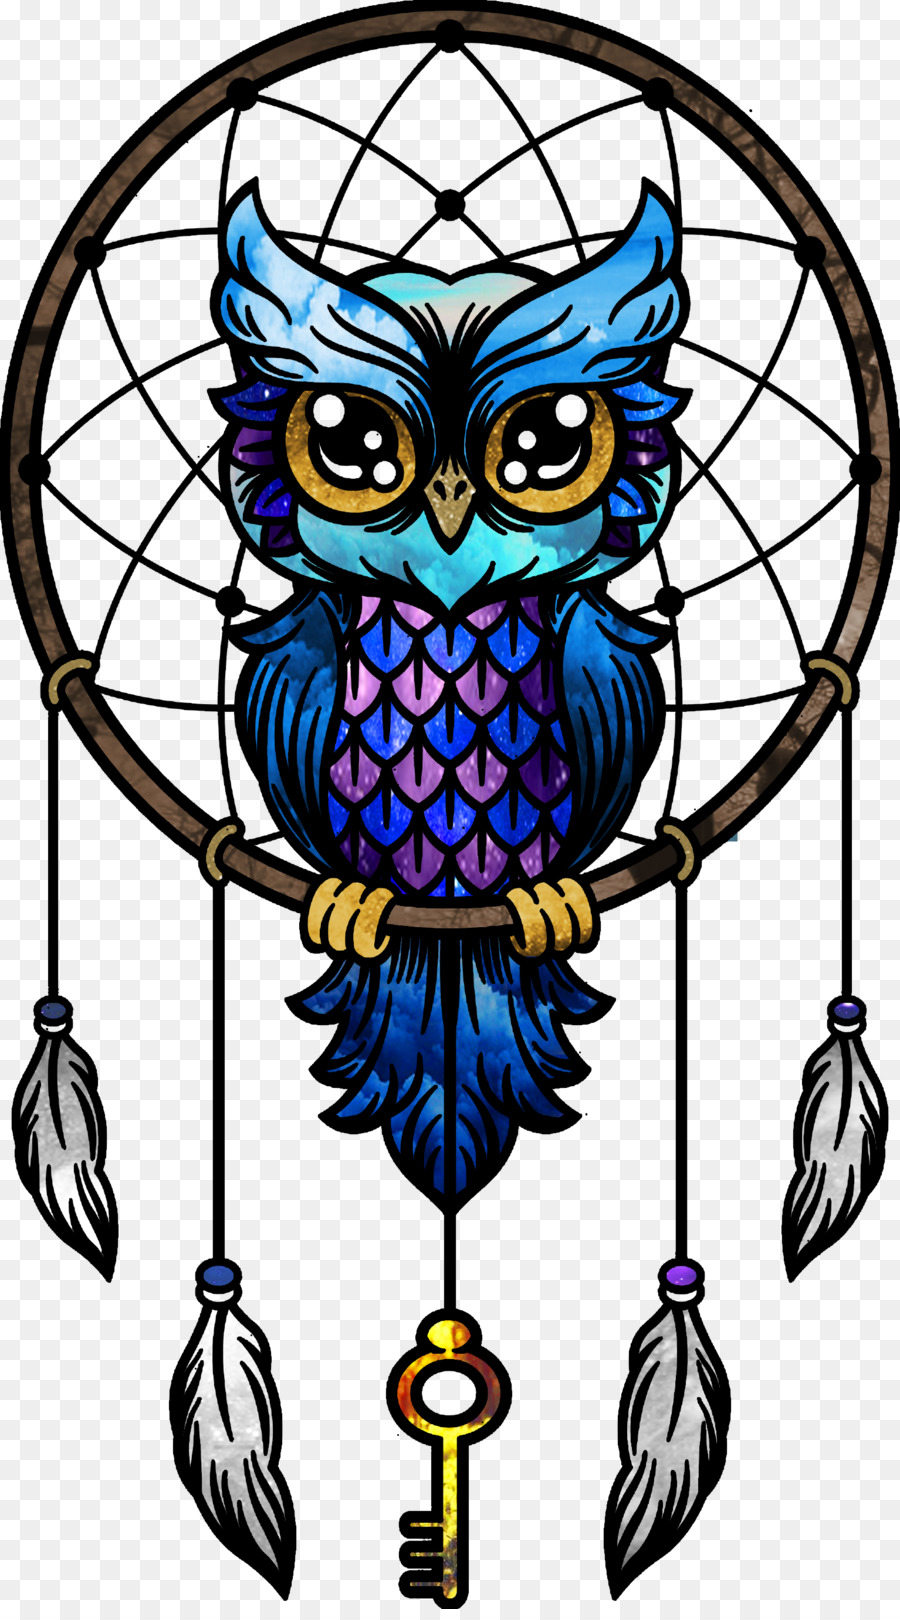 Dreamcatcher little owl paper drawing dreamcatcher hd png download dreamcatcher little owl paper drawing dreamcatcher hd voltagebd Choice Image